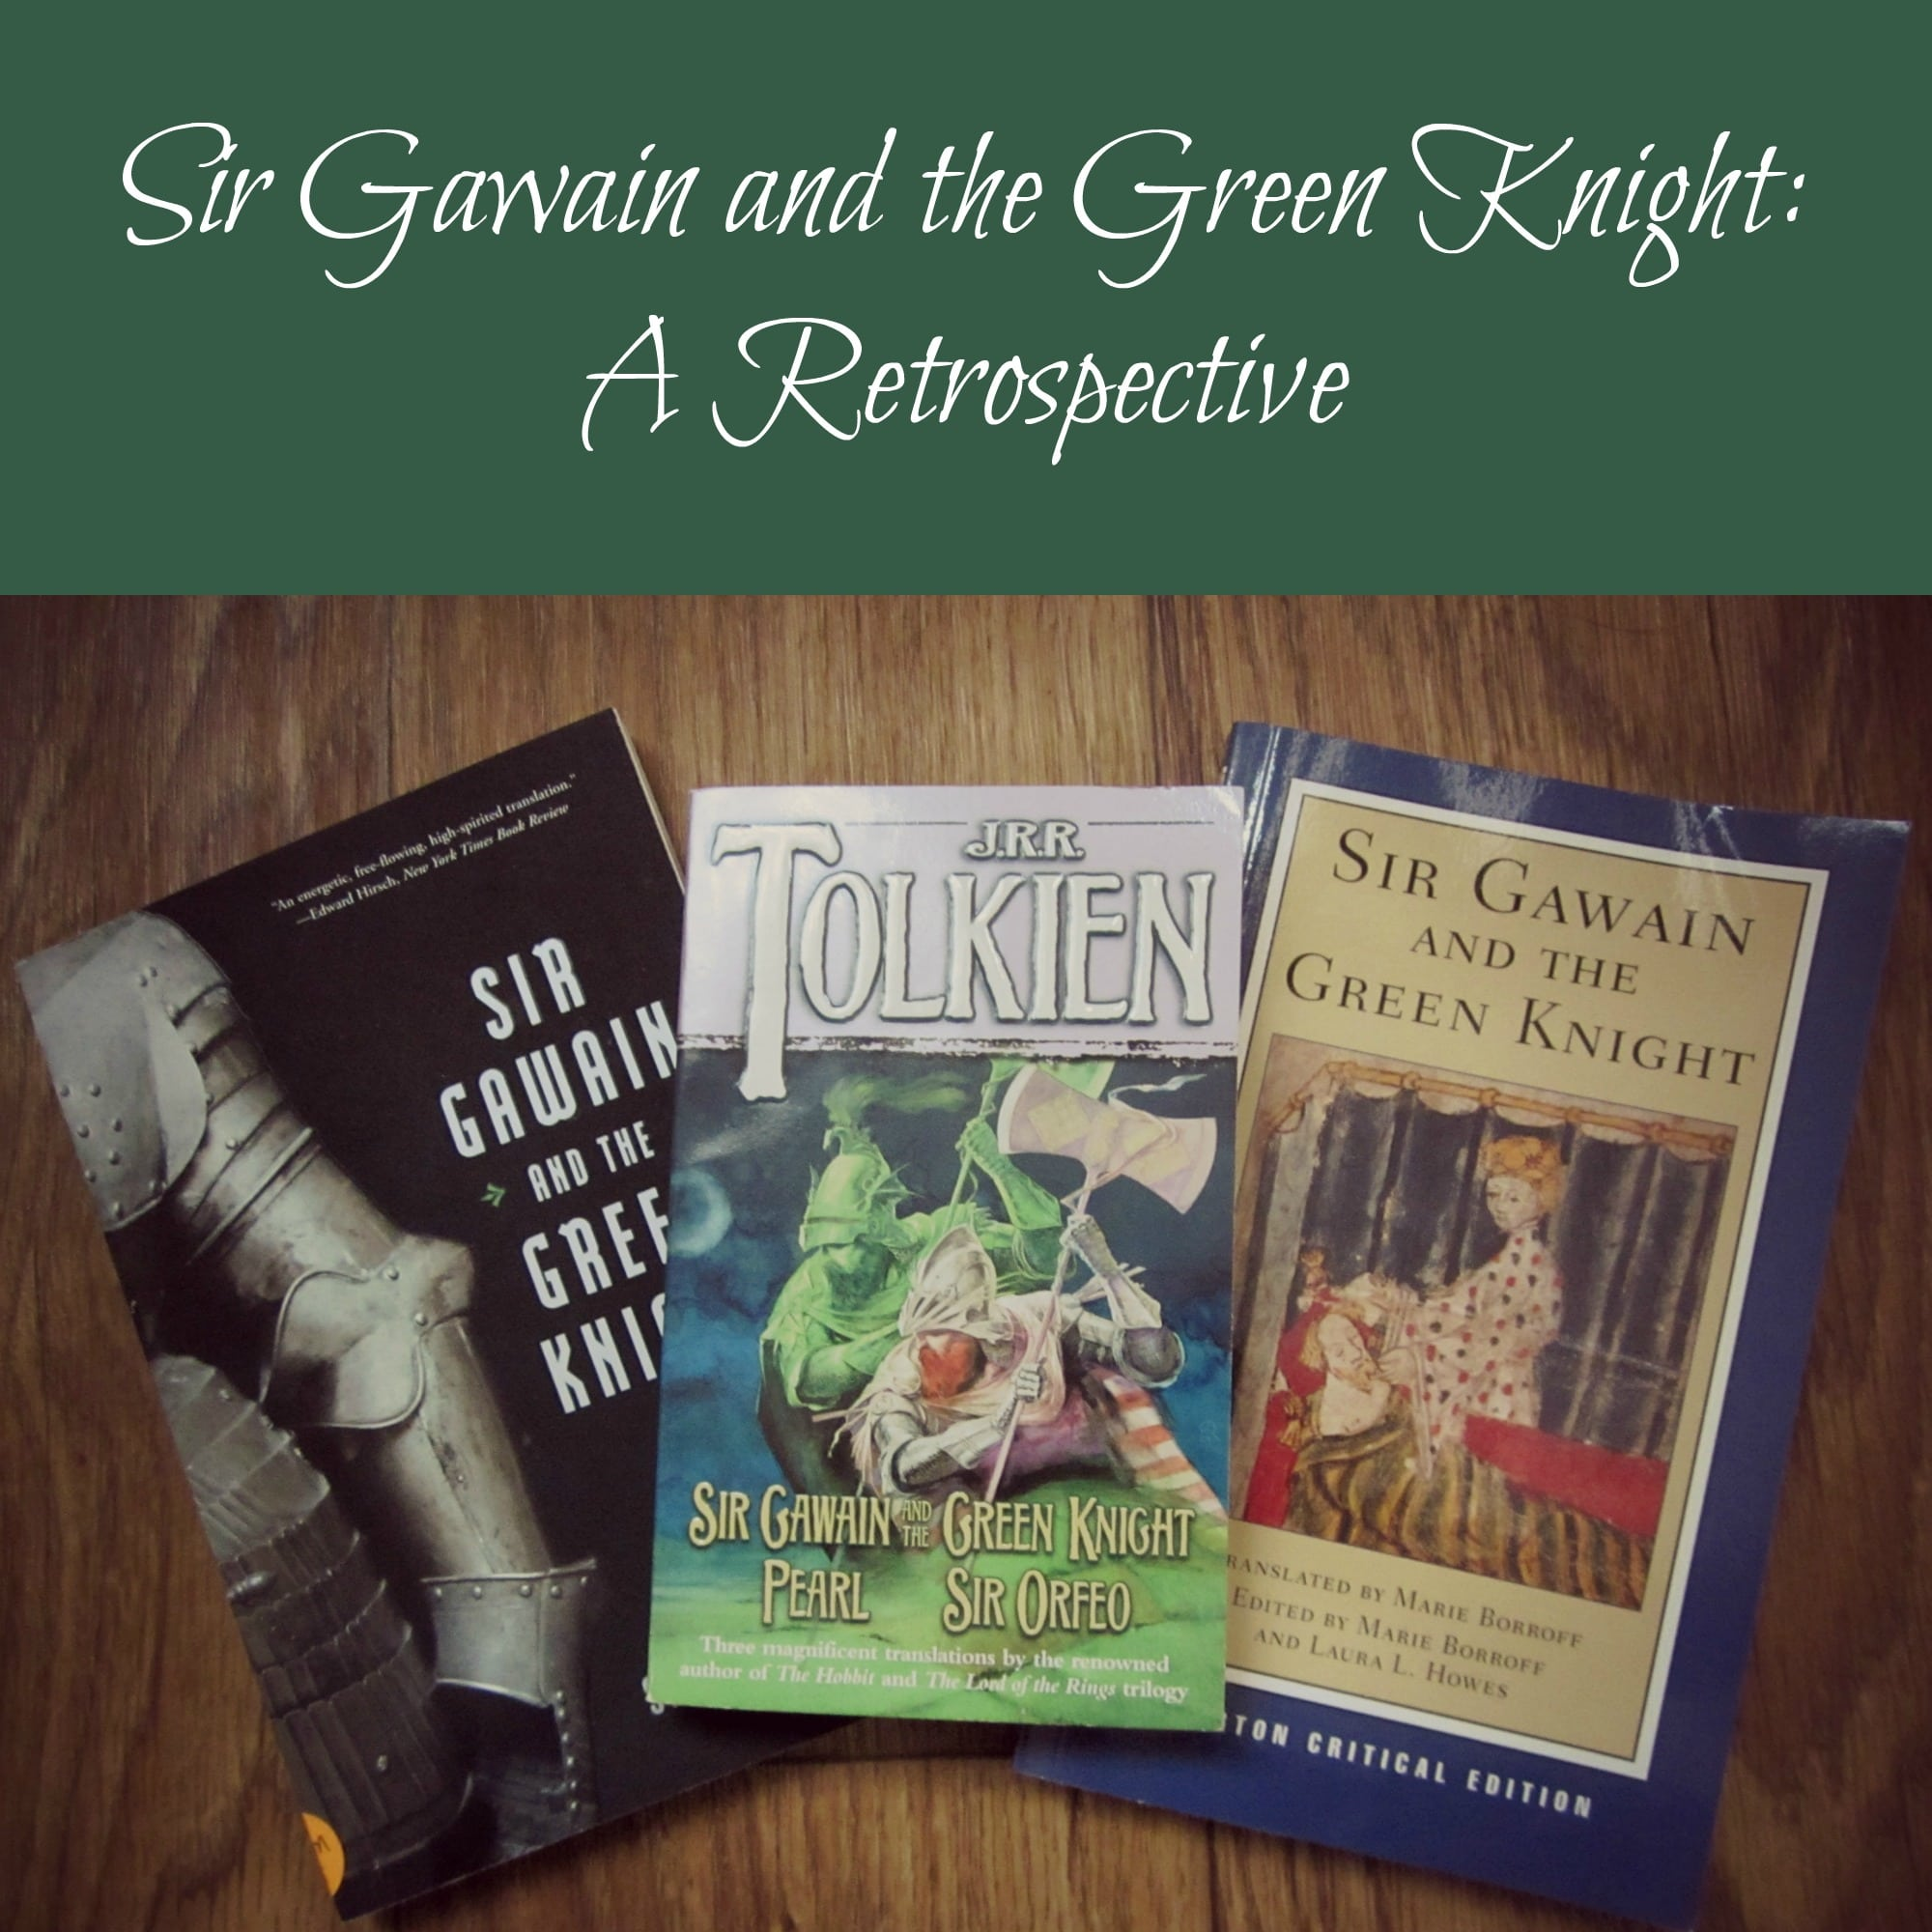 sir gawain and the green knight essay outline Sir gawain and the green knight dissertation writing service to write a master sir gawain and the green knight dissertation for a masters dissertation defense.